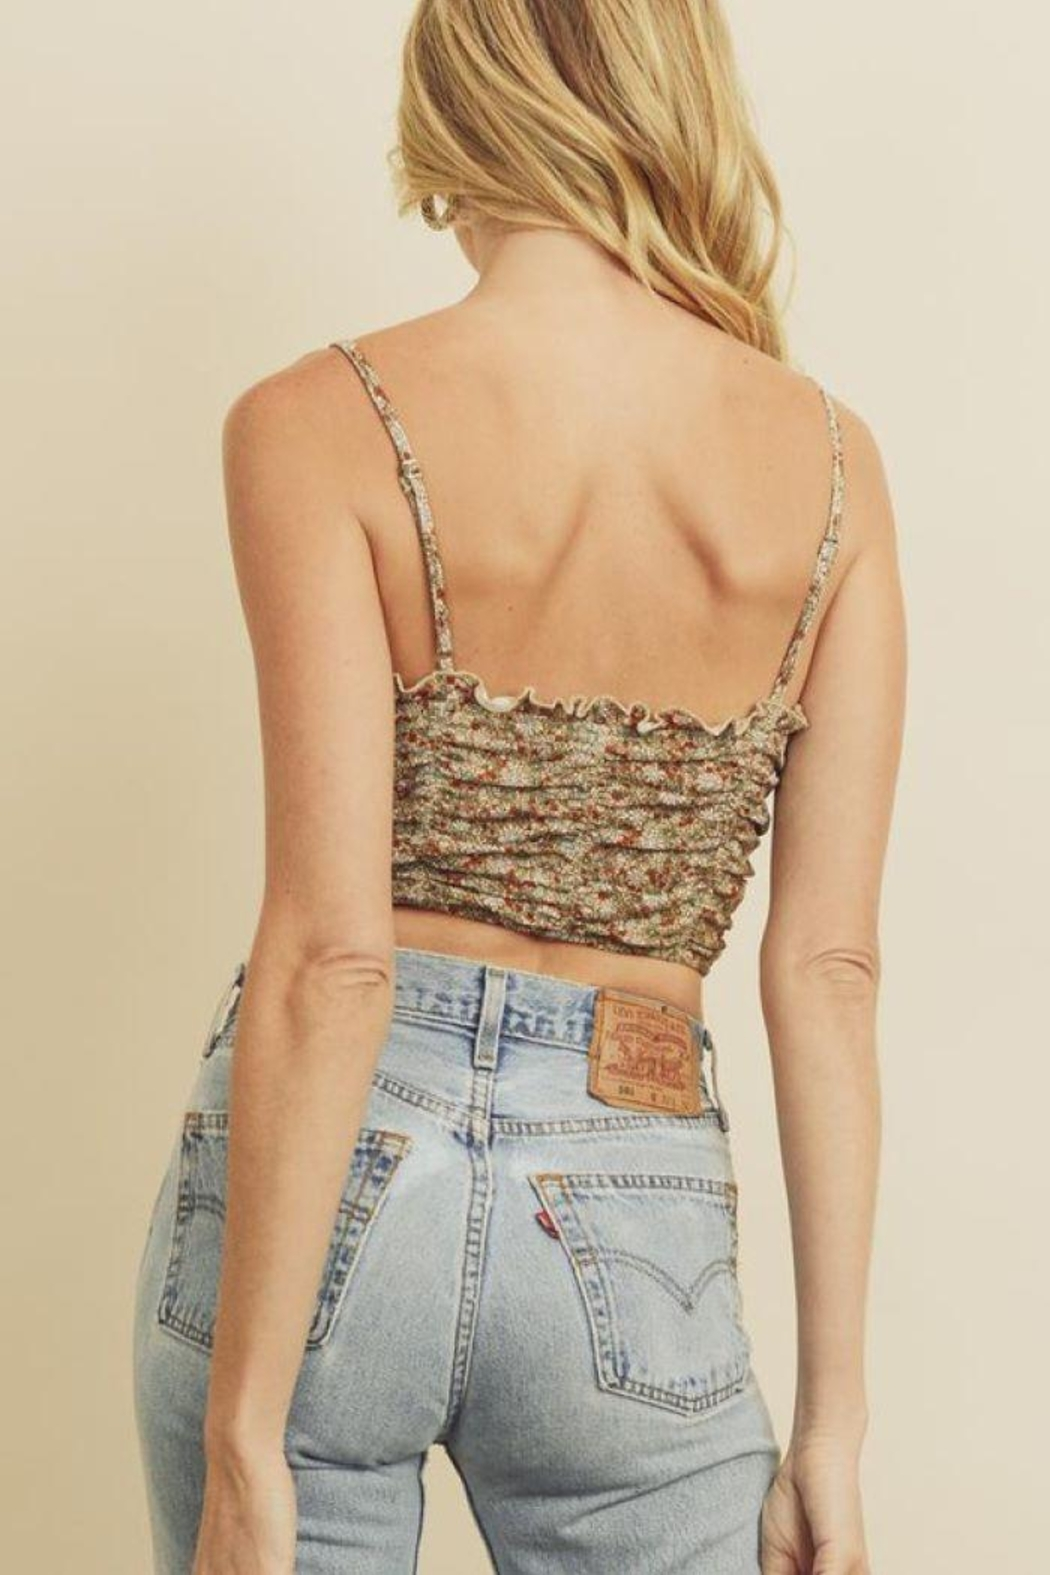 dress forum Ditsy Floral Print Sleeveless Cropped Top - Side Cropped Image